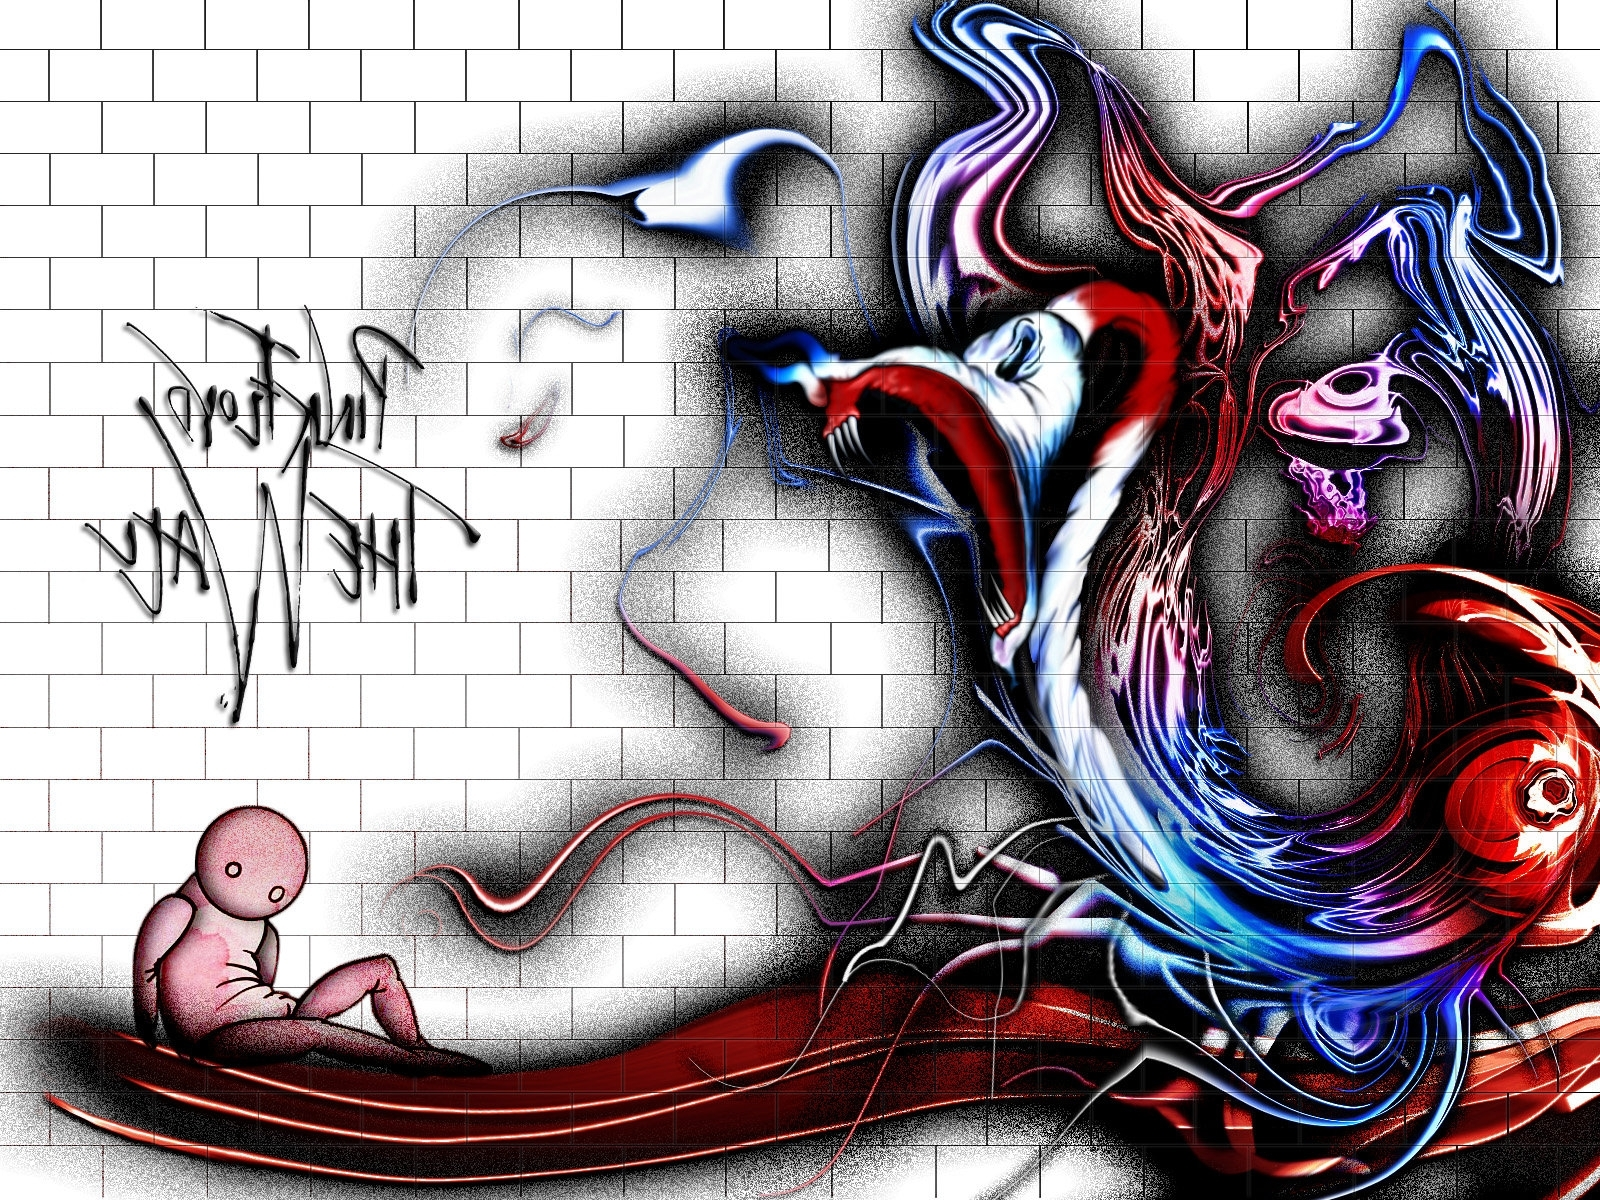 Pink' Floyd - The Wallemrat On Deviantart intended for 2017 Pink Floyd The Wall Art